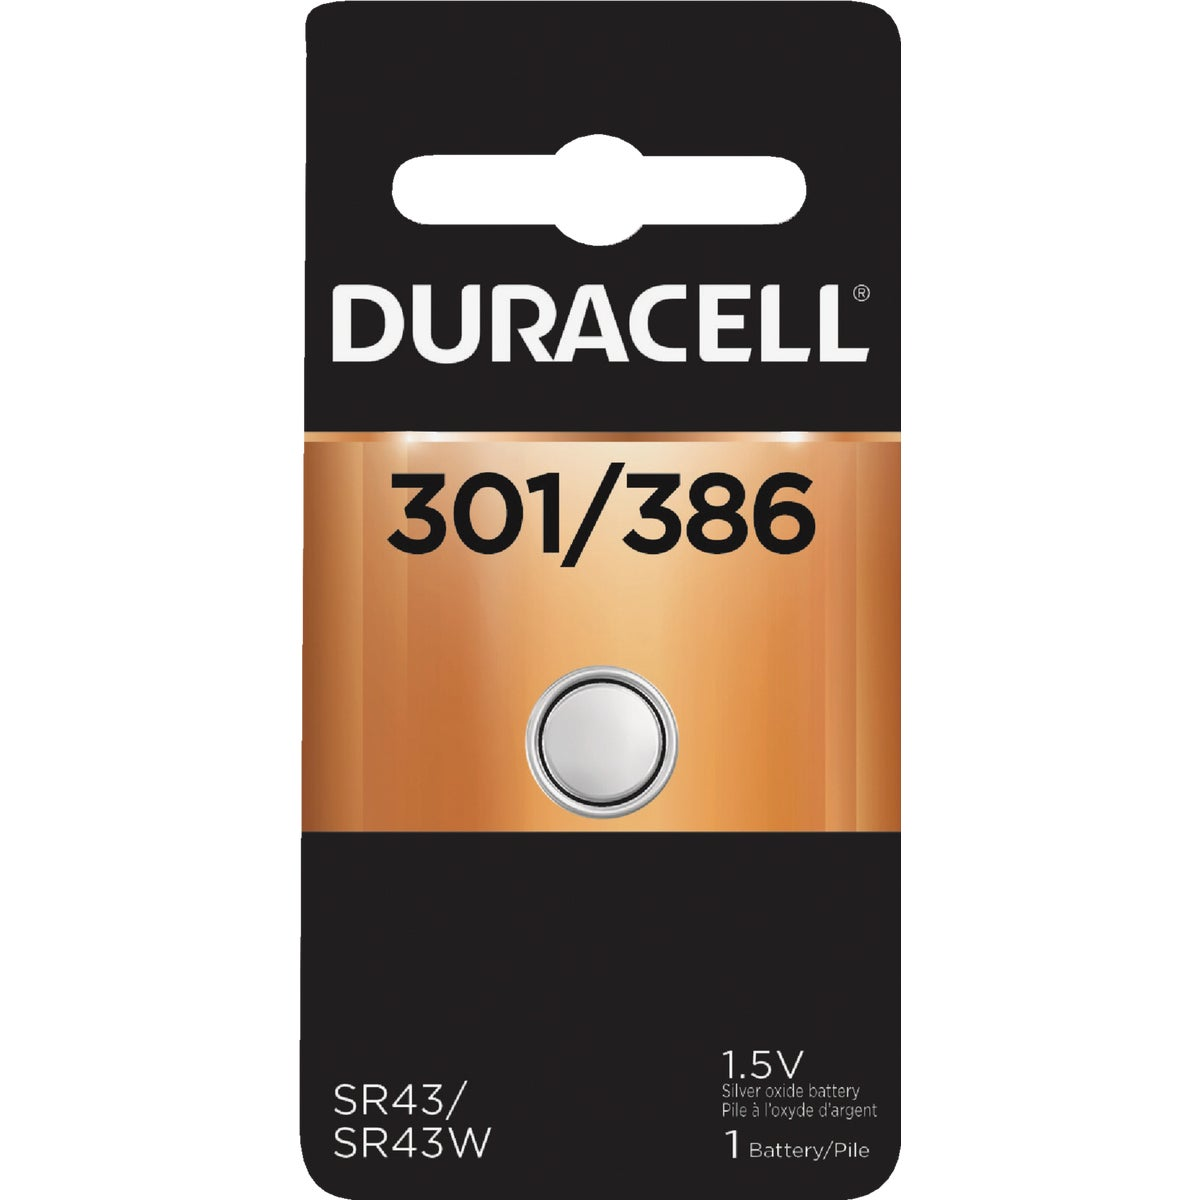 D301/386 1.5V WA BATTERY - 39887 by P & G  Duracell